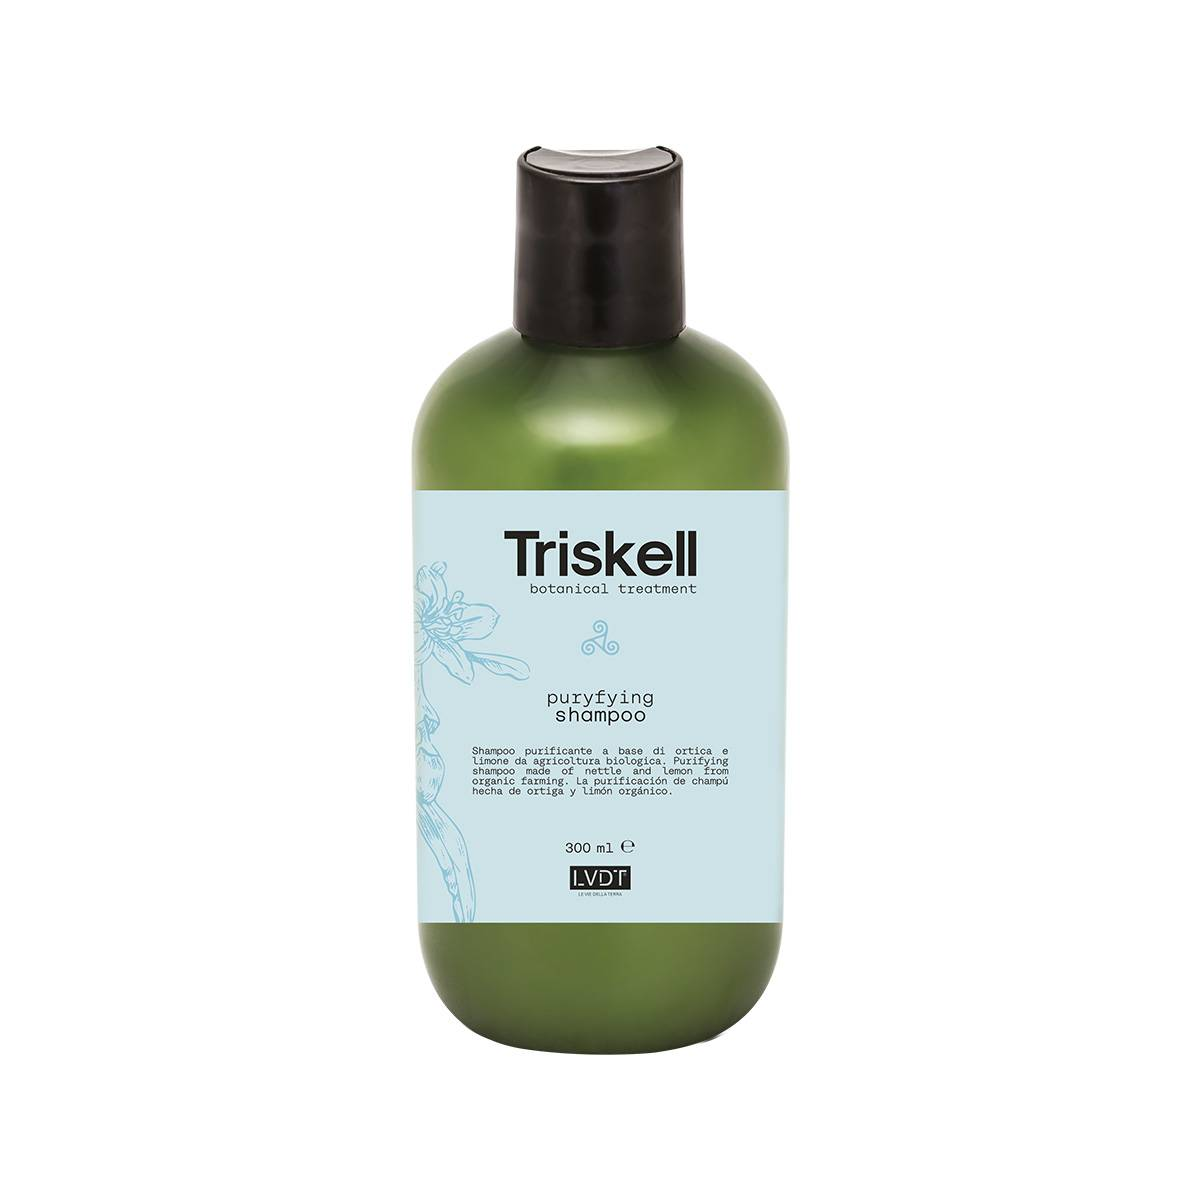 Purifyng shampoo 300 ml new triskell nuova botanical treatment PUREZZA/FORFORA